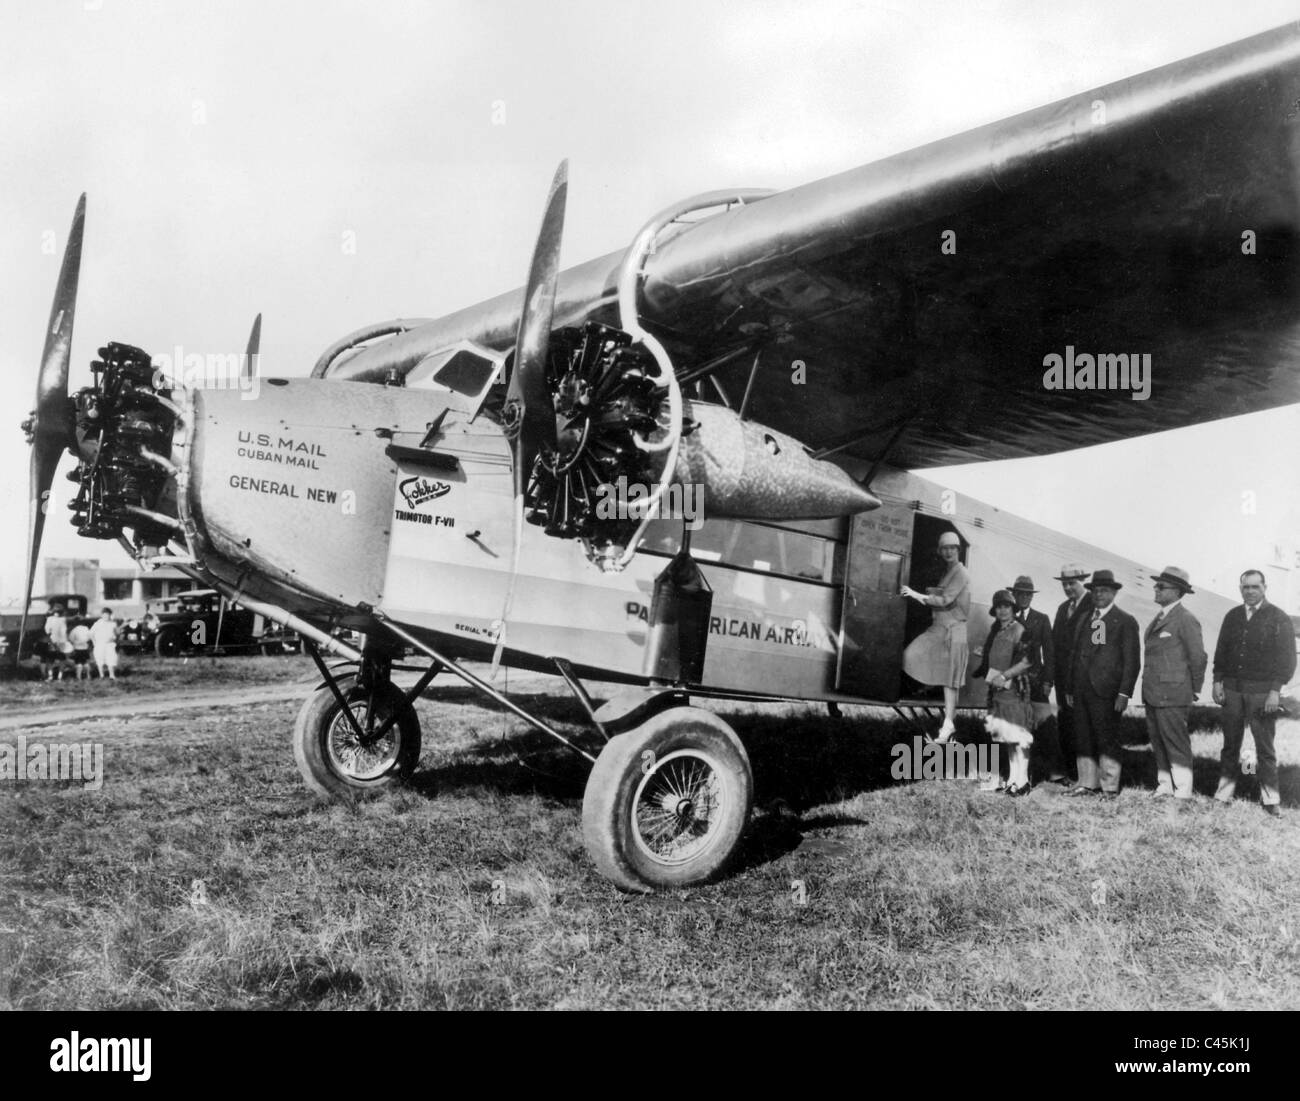 Focker F-VII/3m belonging to the American airline PanAm, 1928 - Stock Image